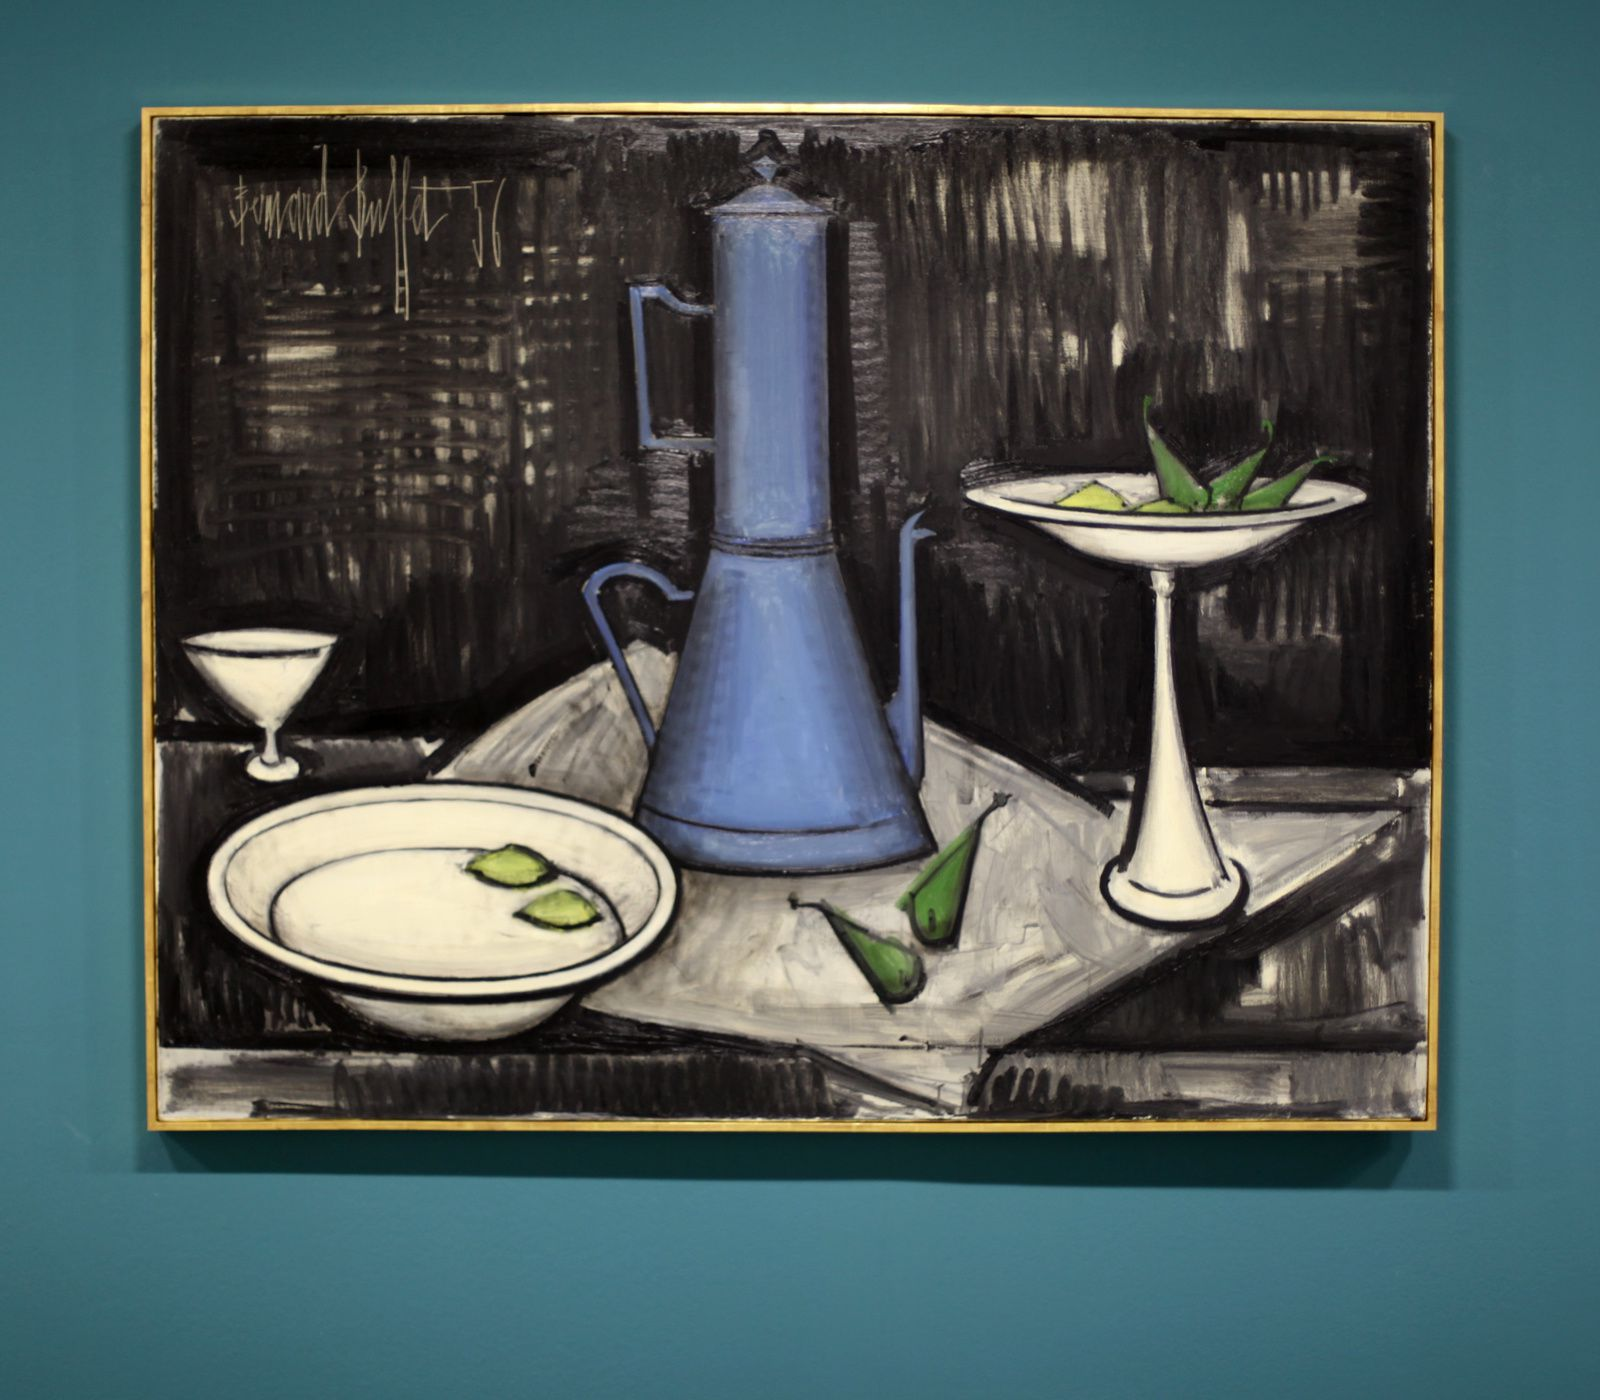 """La Cafetière Bleue"", 1956 de Bernard BUFFET - Courtesy Fonds de dotation B. Buffet © Photo Éric Simon"